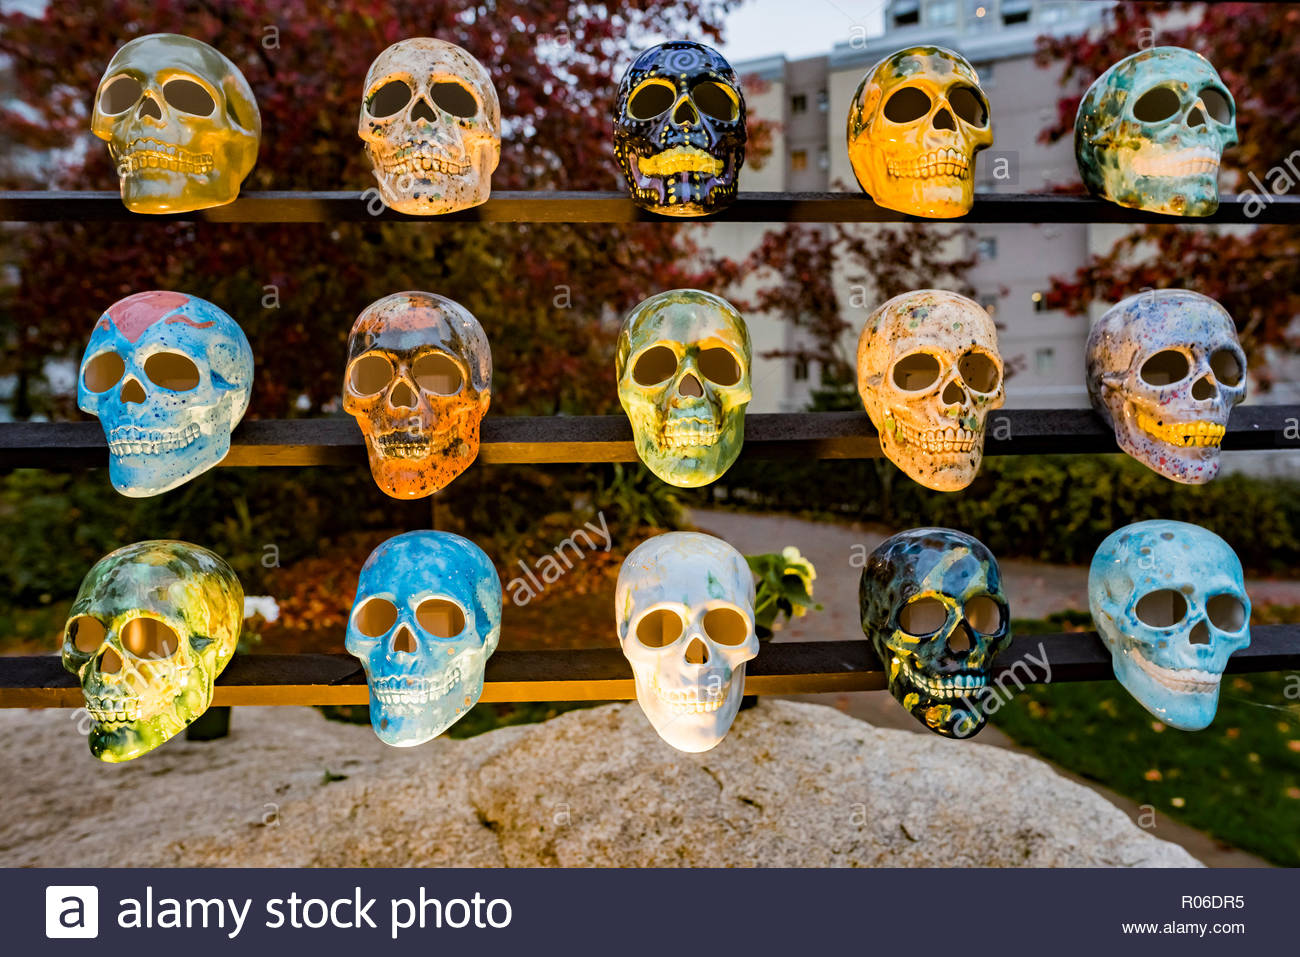 Halloween shrine skulls, Emery Barnes Park, Vancouver, British Columbia, Canada - Stock Image